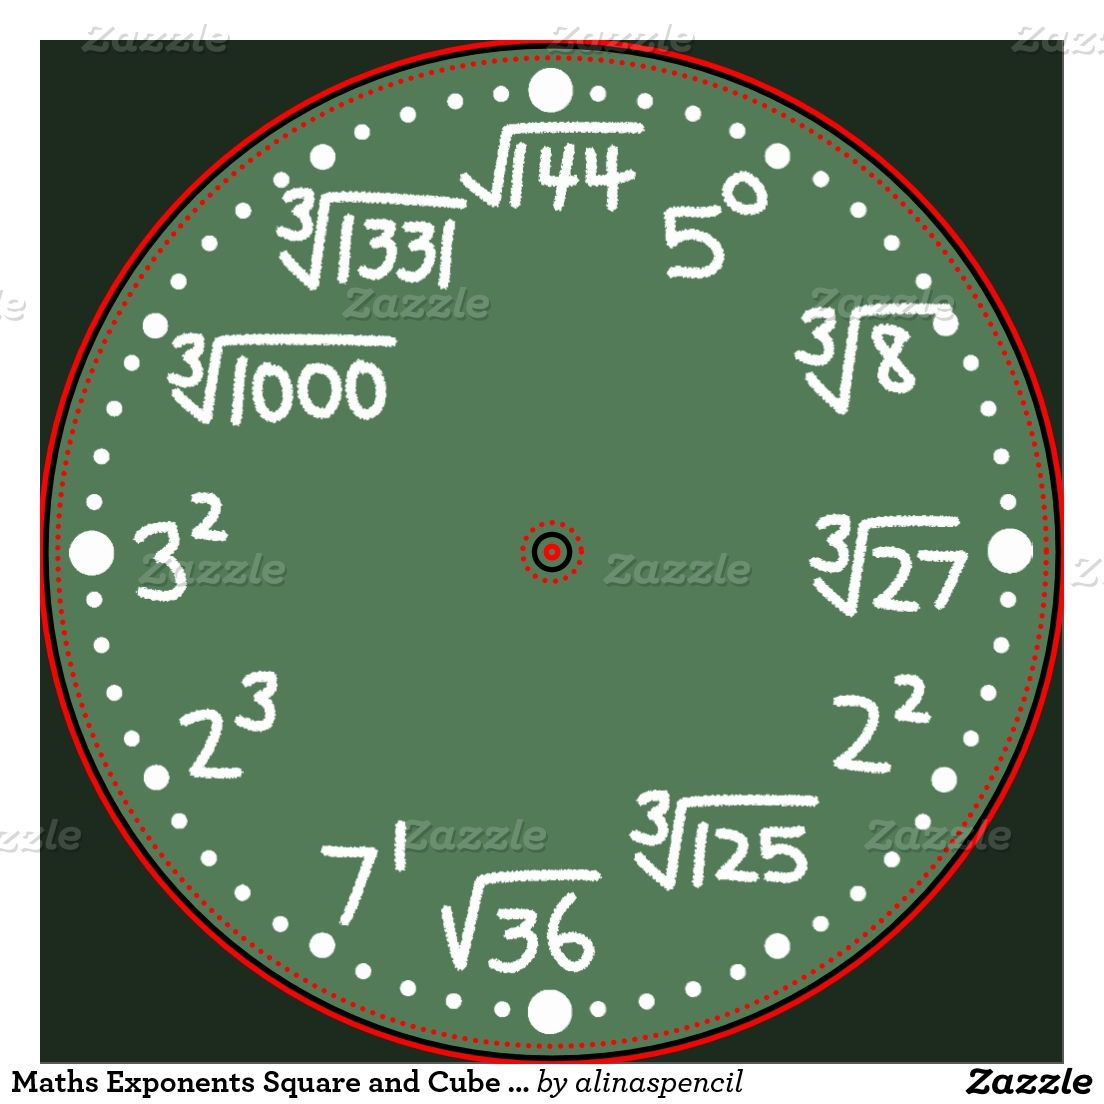 medium resolution of Maths Exponents Square and Cube Roots Wall Clock   Zazzle.com   Exponents